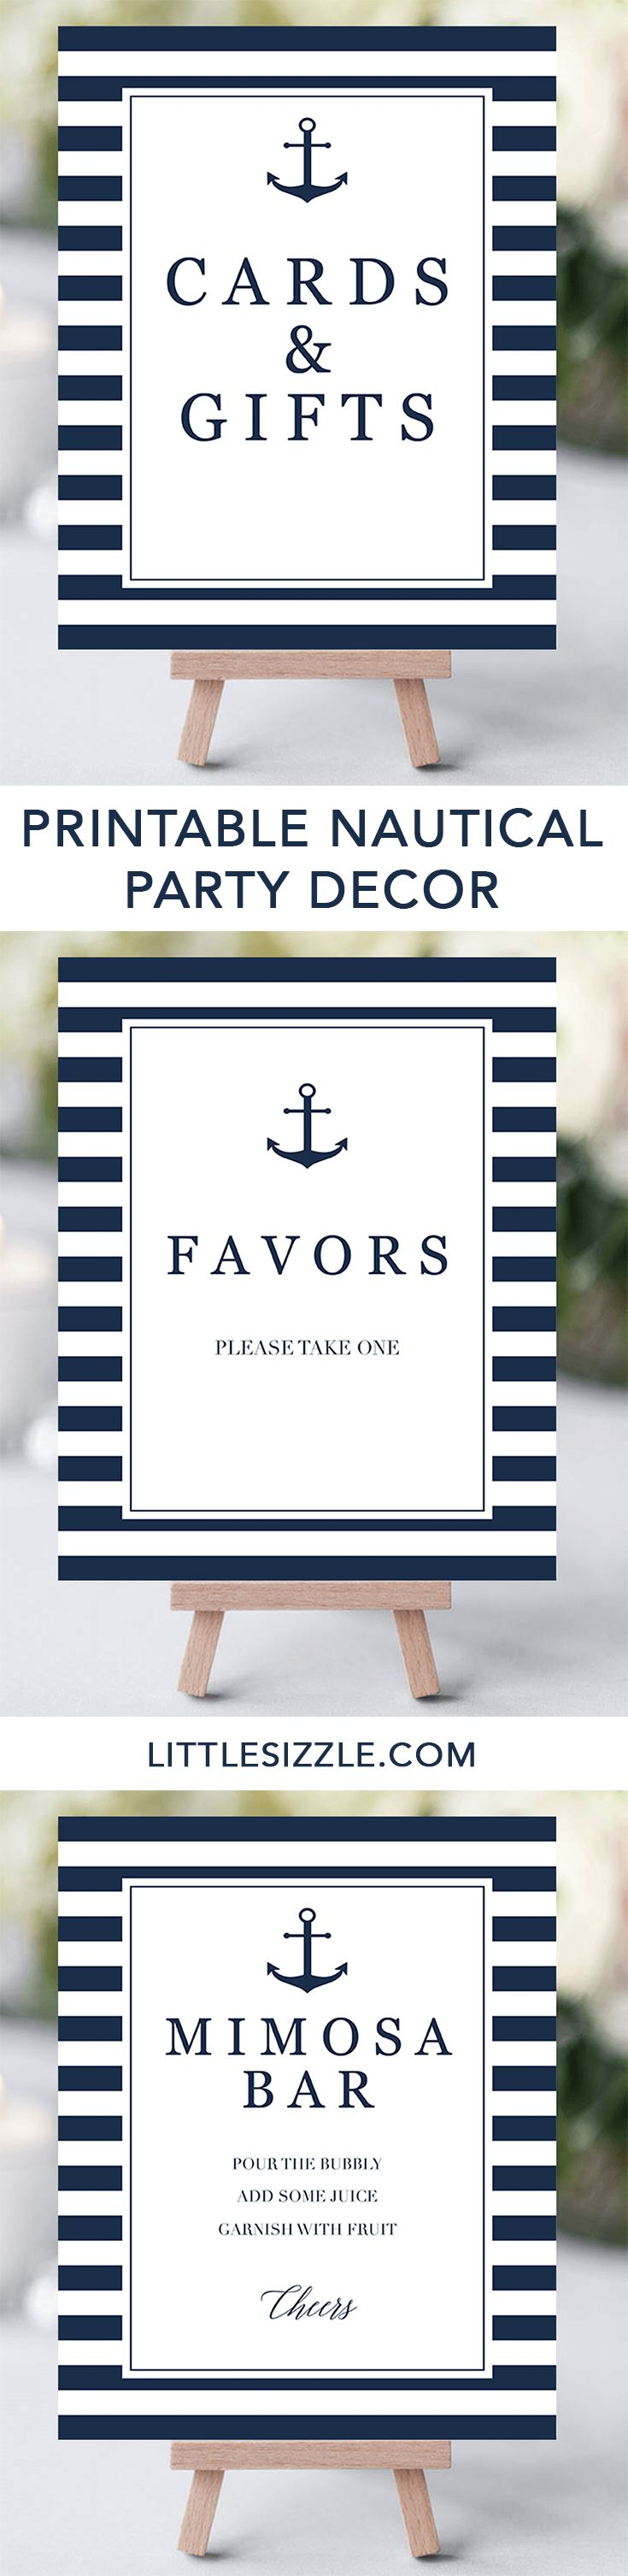 Nautical party decor ideas by LittleSizzle. Printable nautical themed party decorations and navy signs. Click through to instantly download your own navy stripes decor or re-pin for later! These stylish navy and white baby shower signs will add a really great touch to your navy themed baby shower to welcome a baby boy. Or decorate your anchor themed party with these anchor signs. Cards and Gifts sign, party Favors sign, Mimosa Bar sign and more! #decor #printable #nautical #boy…